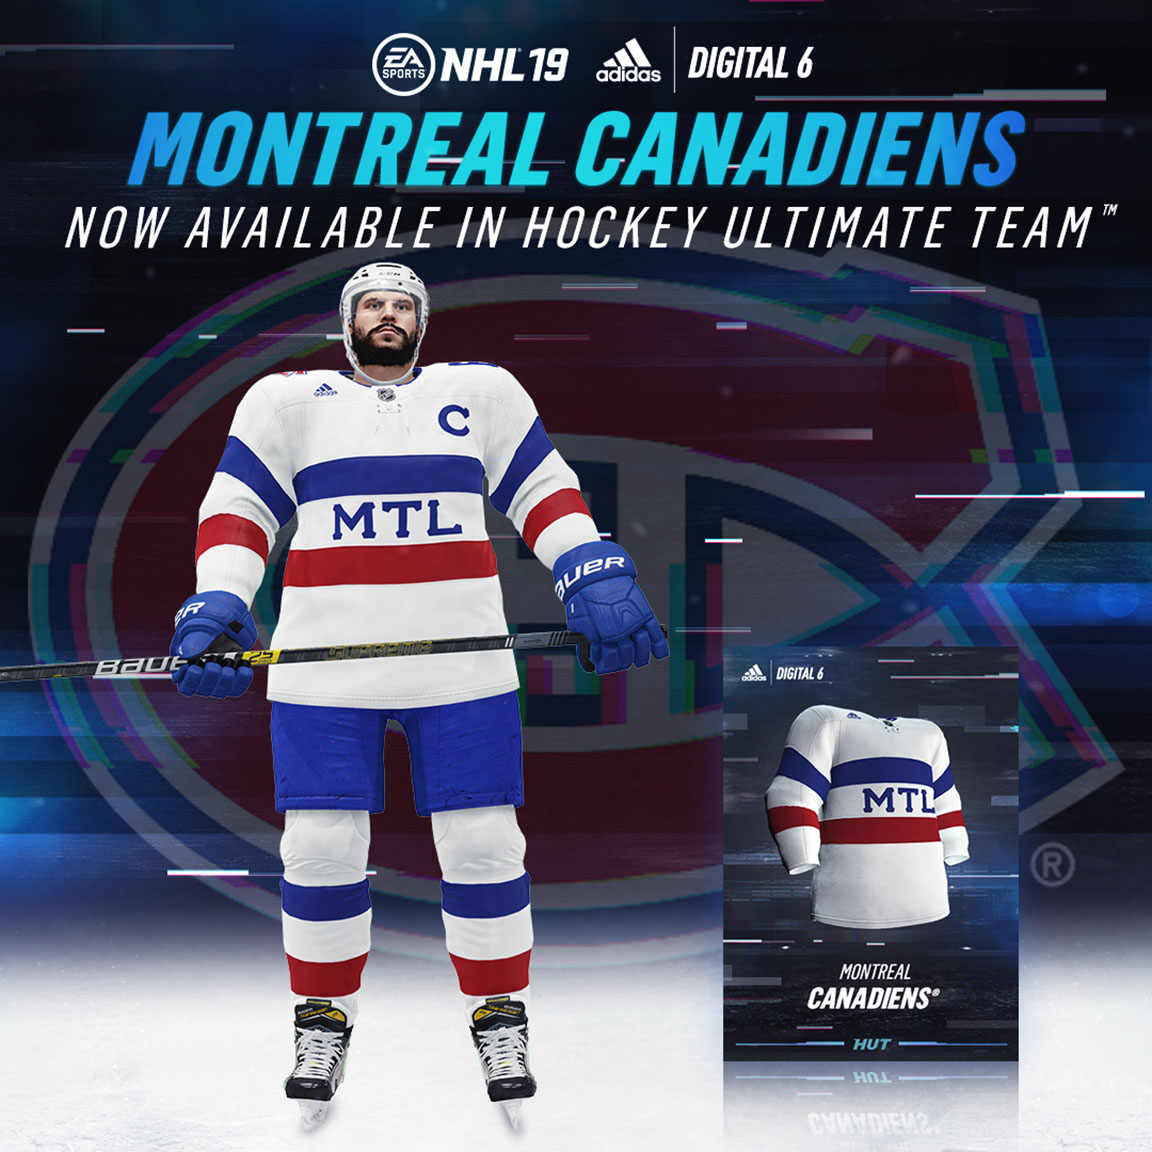 ecae34891c0 adidasHockey x EA_ Digital6_Canadiens_01.jpg